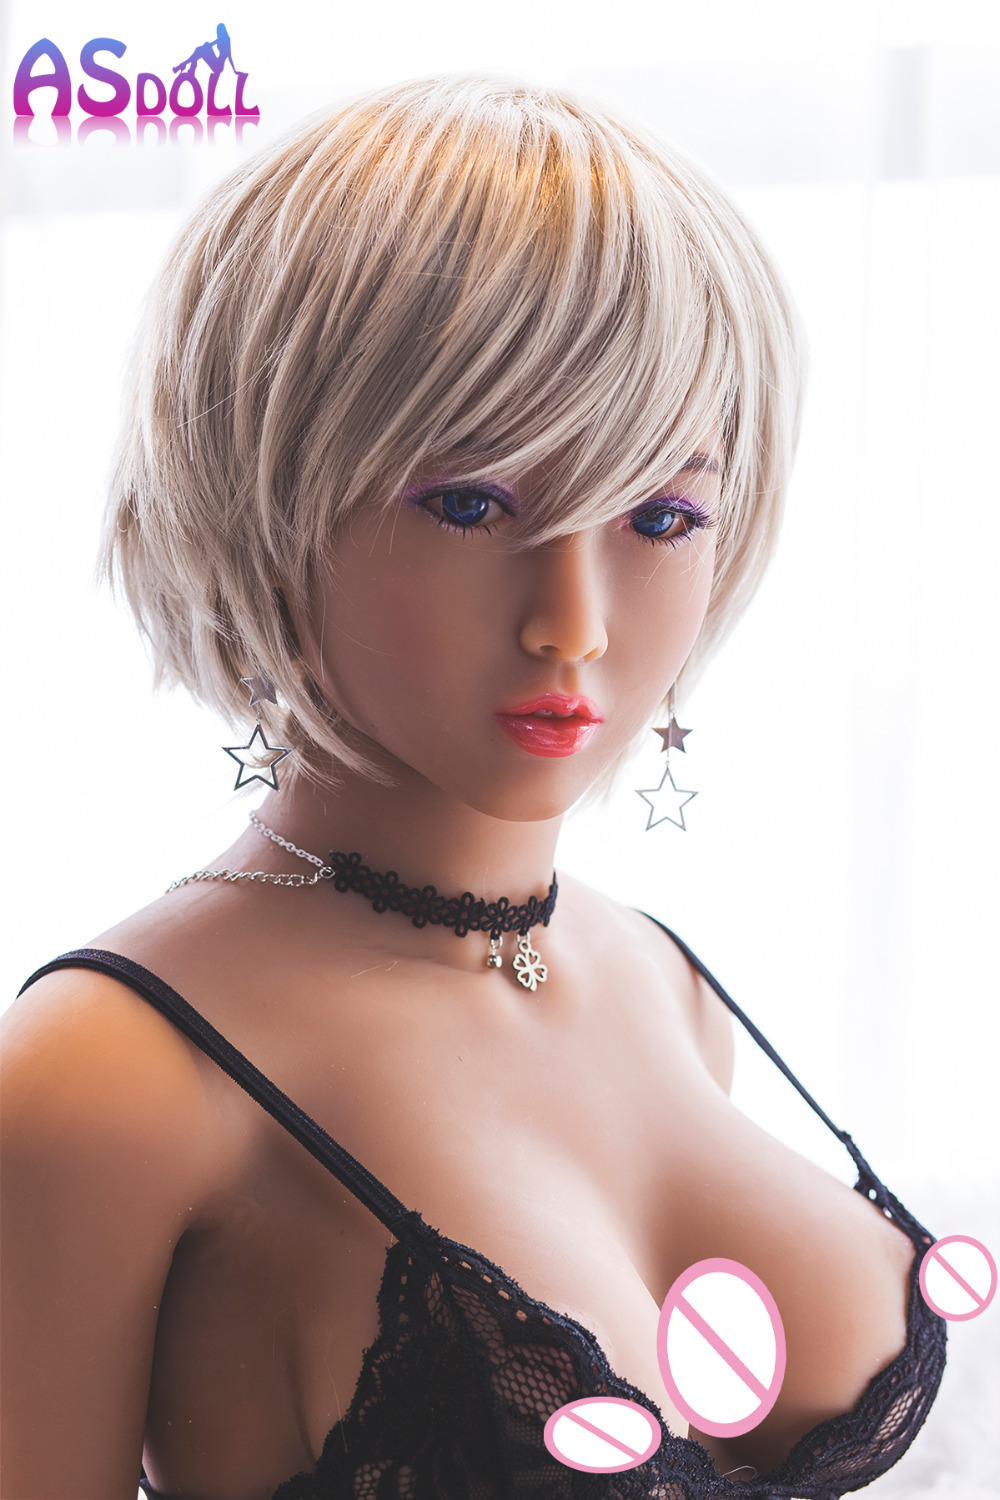 148cm Realistic Silicone Sex Dolls Japanese lifelike breast oral anal vagina pussy Adult Love Doll For Men Adult Sexy Dolls new 166cm realistic lifelike sex dolls full body silicone adult love doll oral vagina real pussy anal sexy product for men